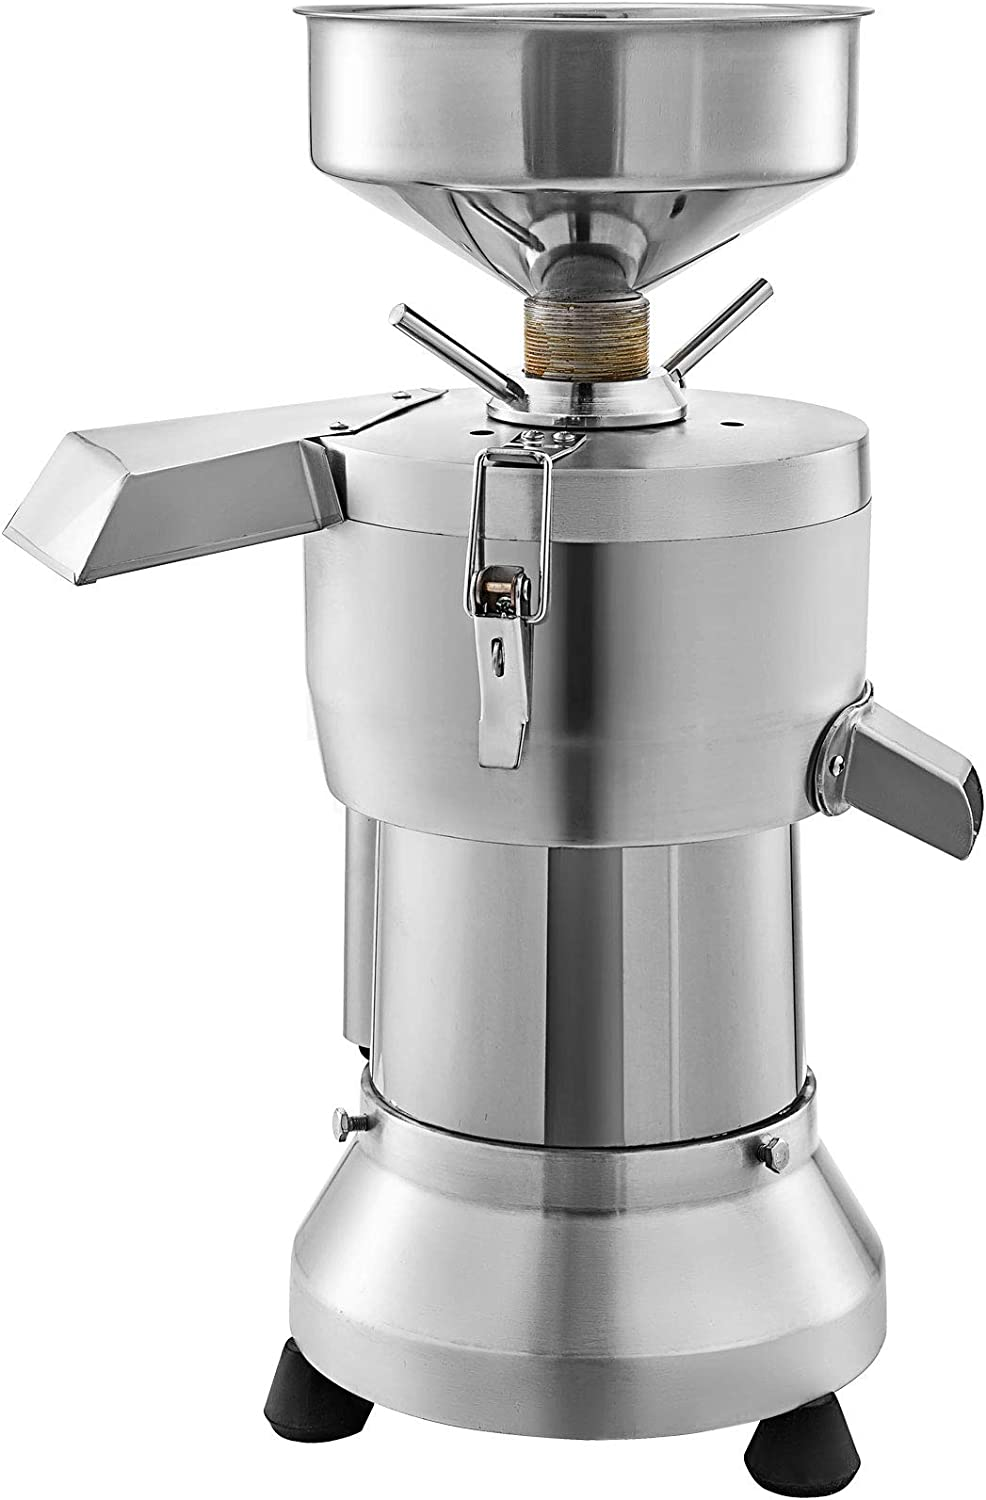 VBENLEM Commercial Soybean Milk Machine, 1500W Automatic Soymilk Making Machine with 70KG/H Yield Output, 1 Extra Strainer Bag & 2 Extra Grind Wheel Set, 2800r/min, Food Grade Stainless Steel for Household and Commercial